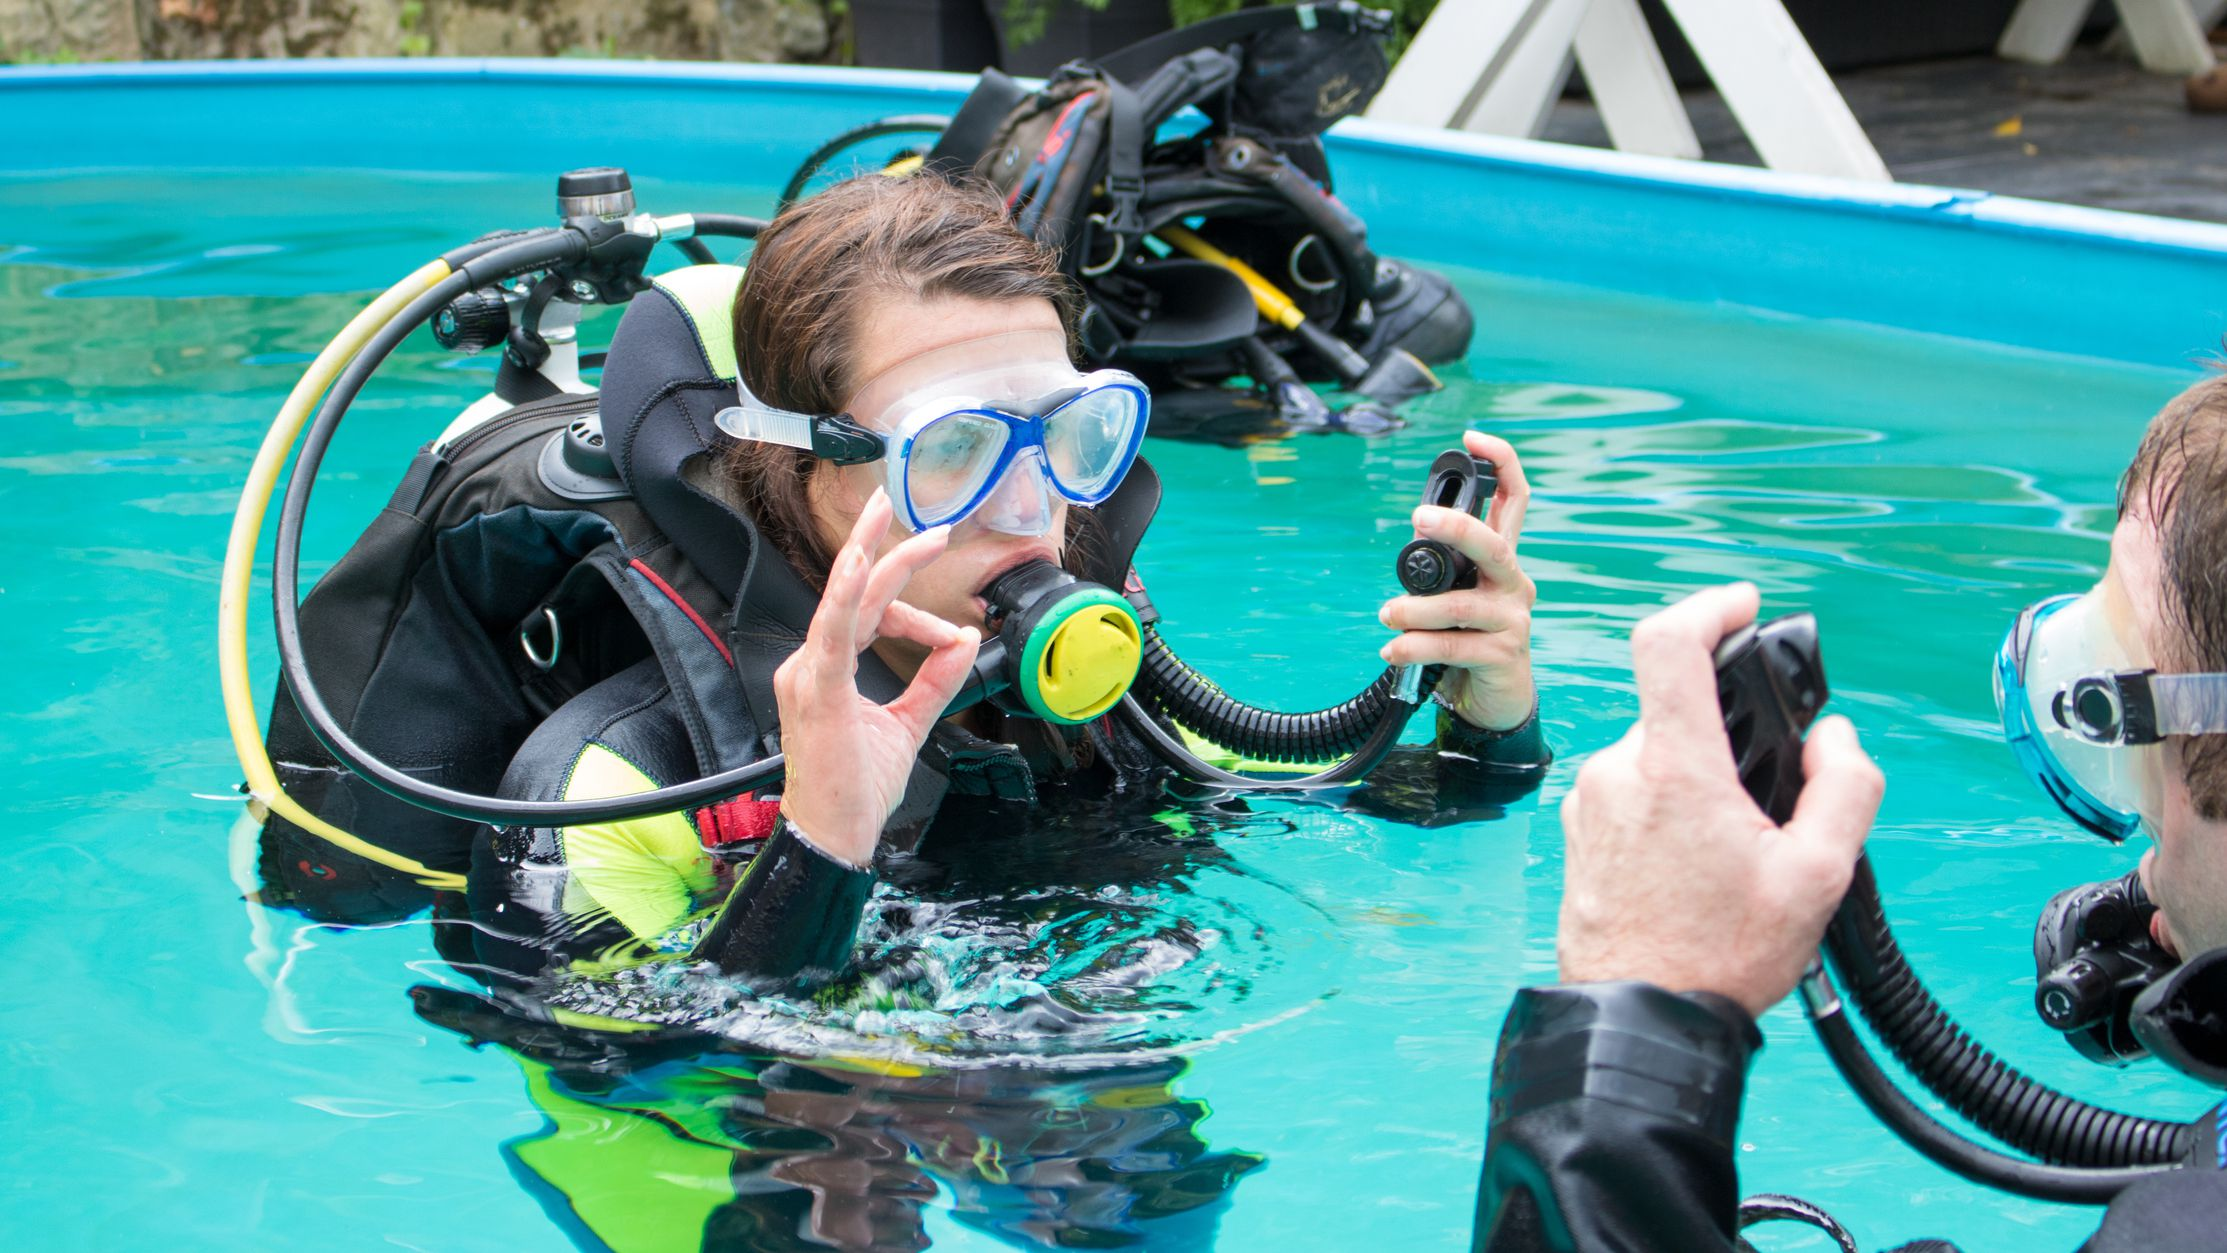 Referral Scuba Diving Certification For Open Water